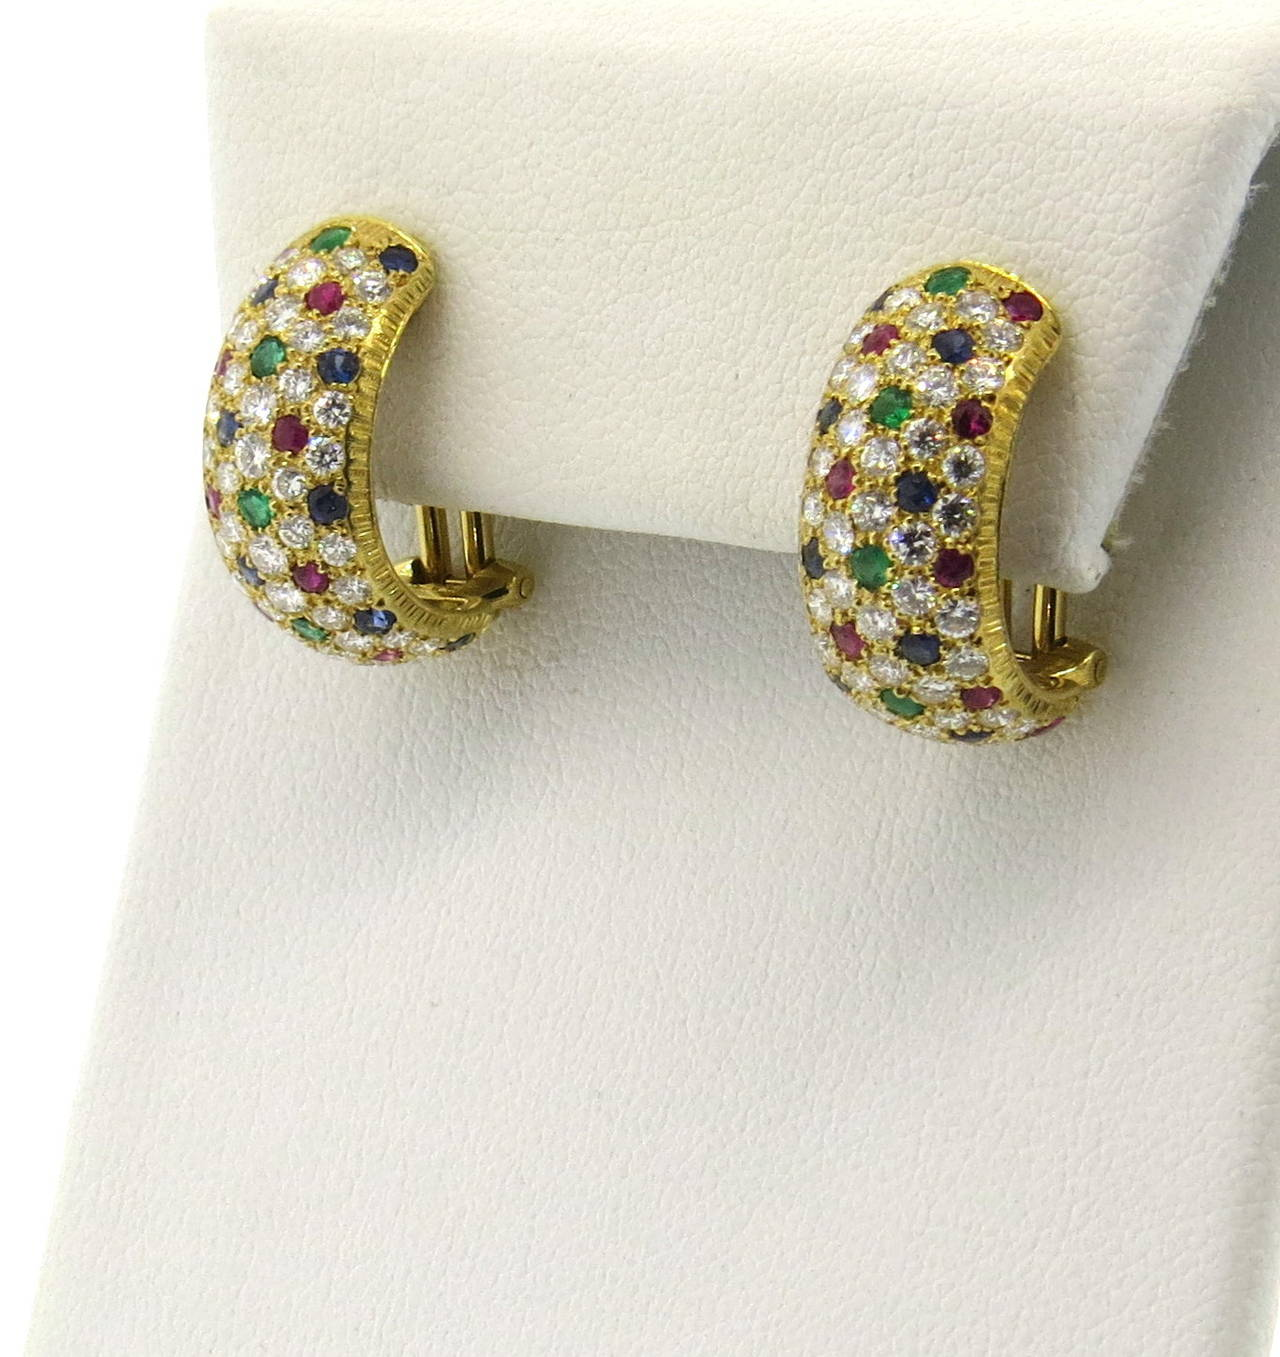 A Pair Of Lively 18k Yellow Gold Earrings Set With Shires Rubies And Emeralds